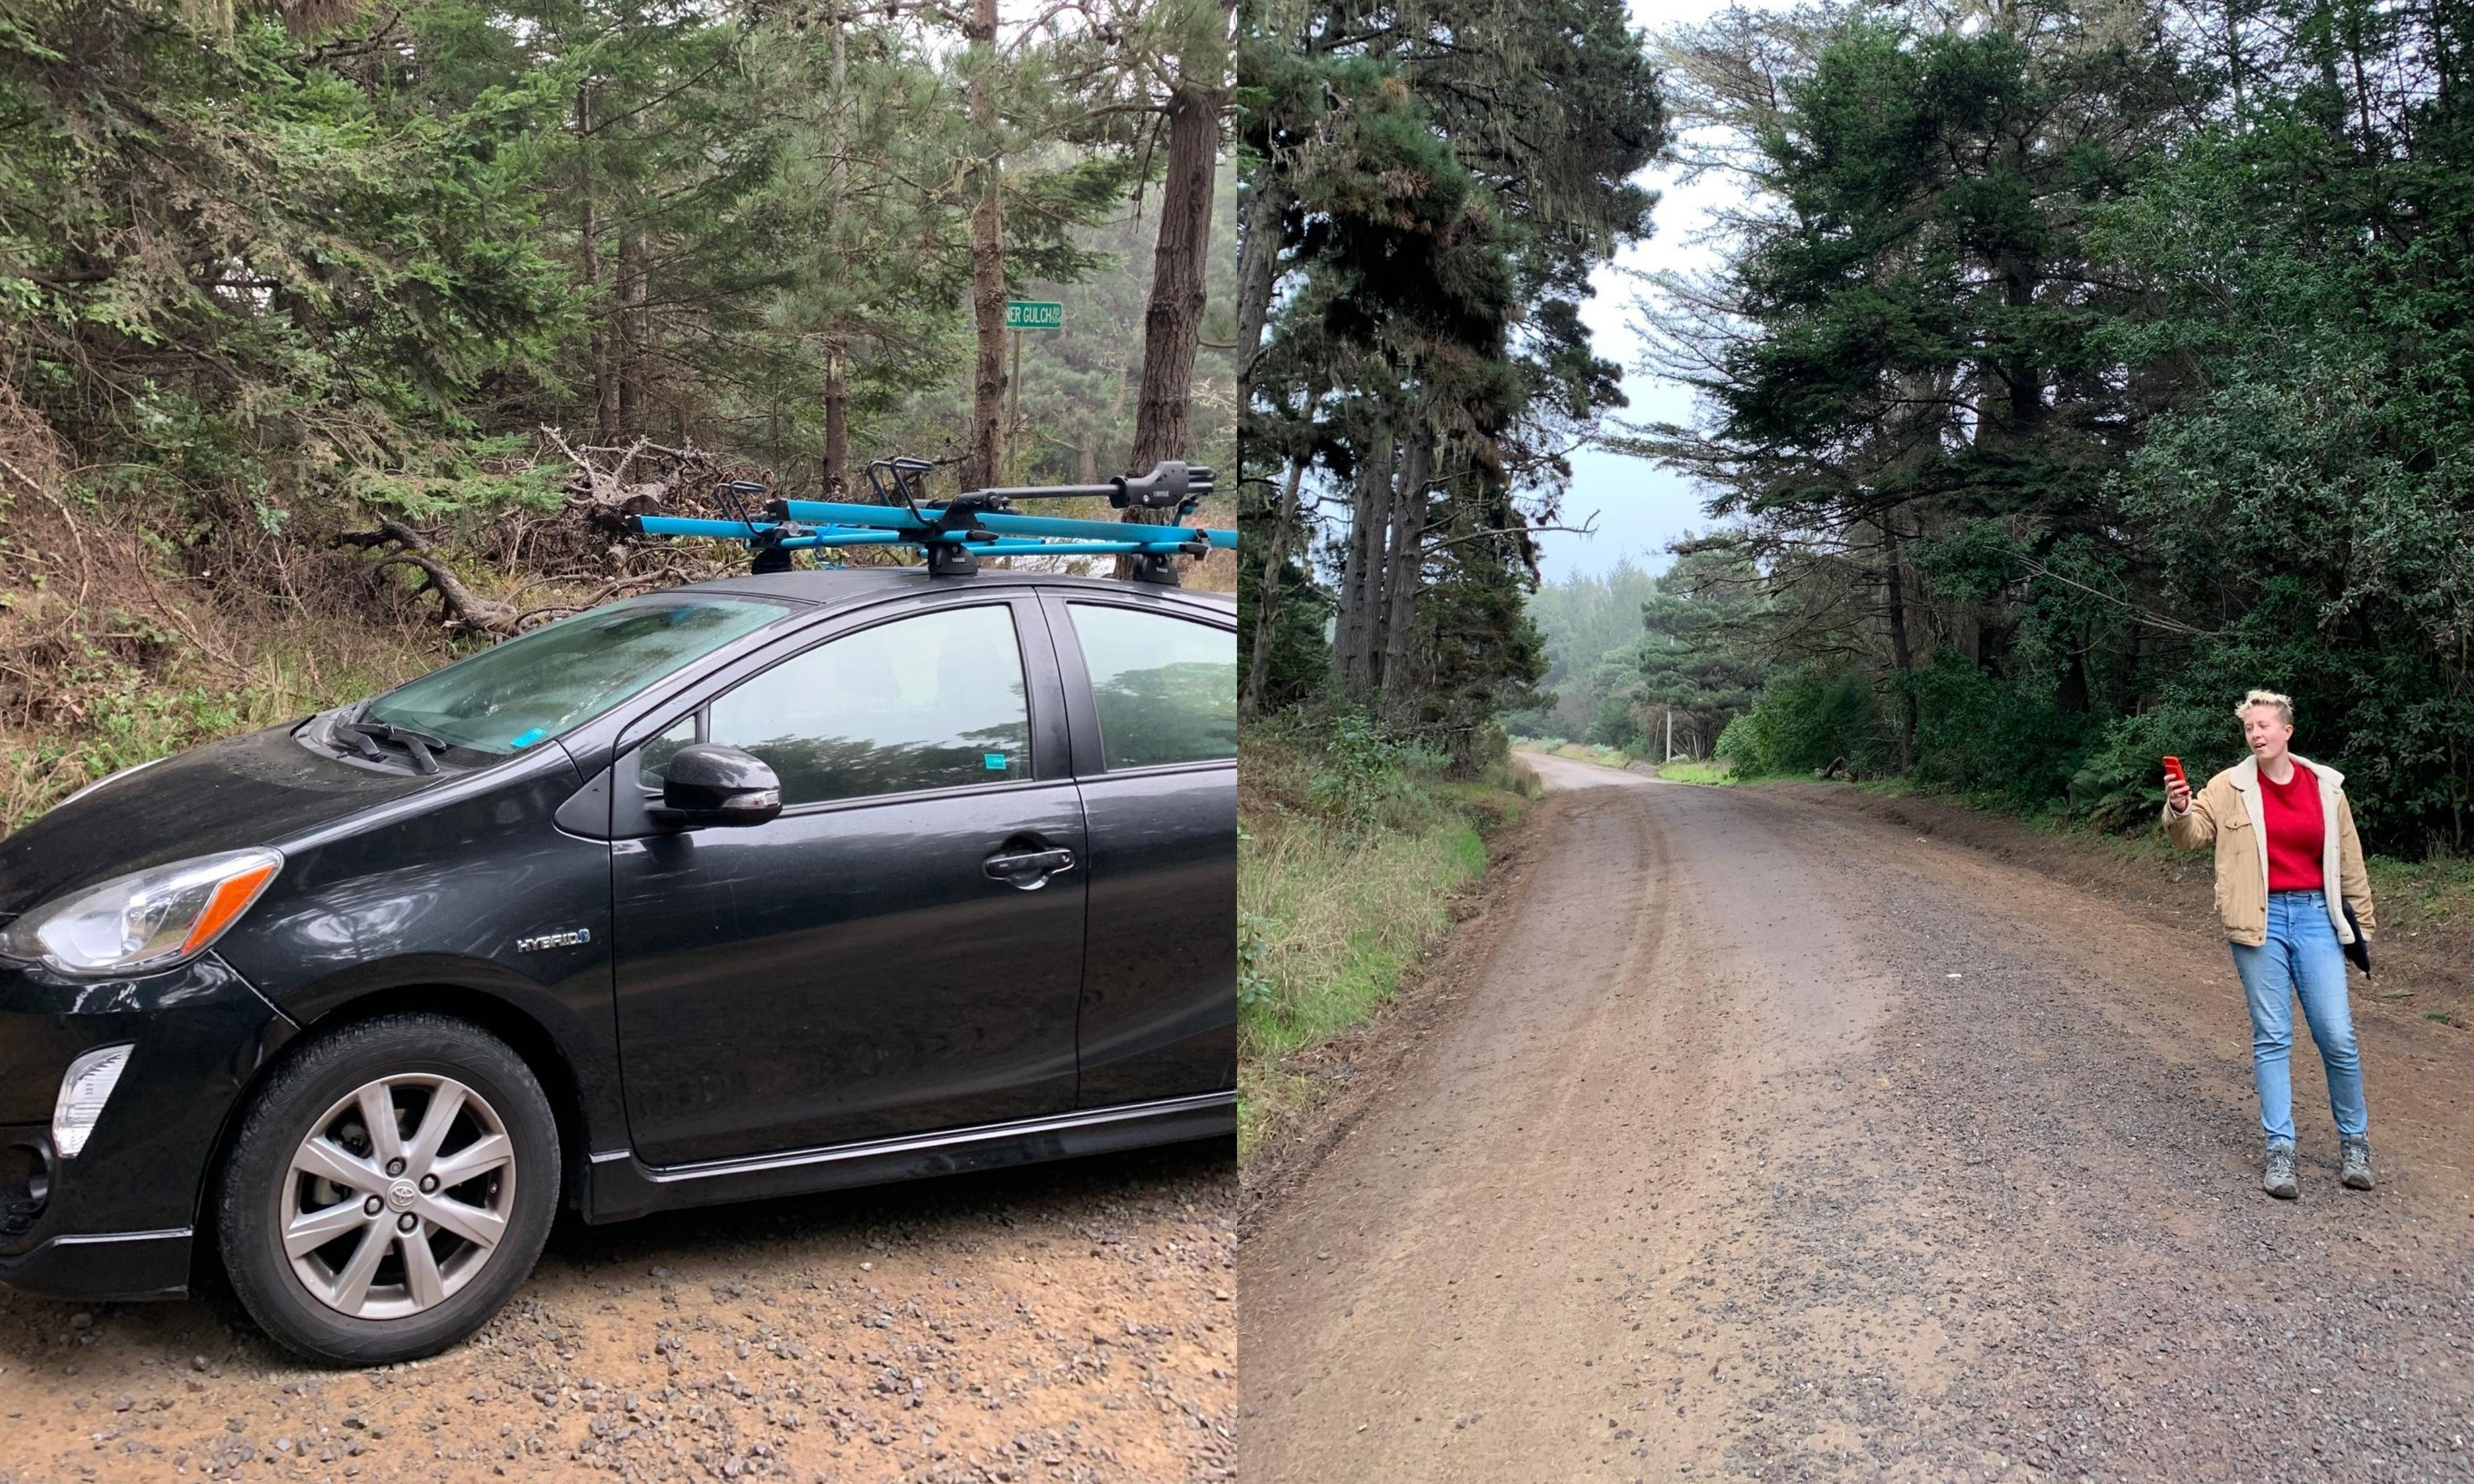 My smart car rental was a breeze – until I got trapped in the woods